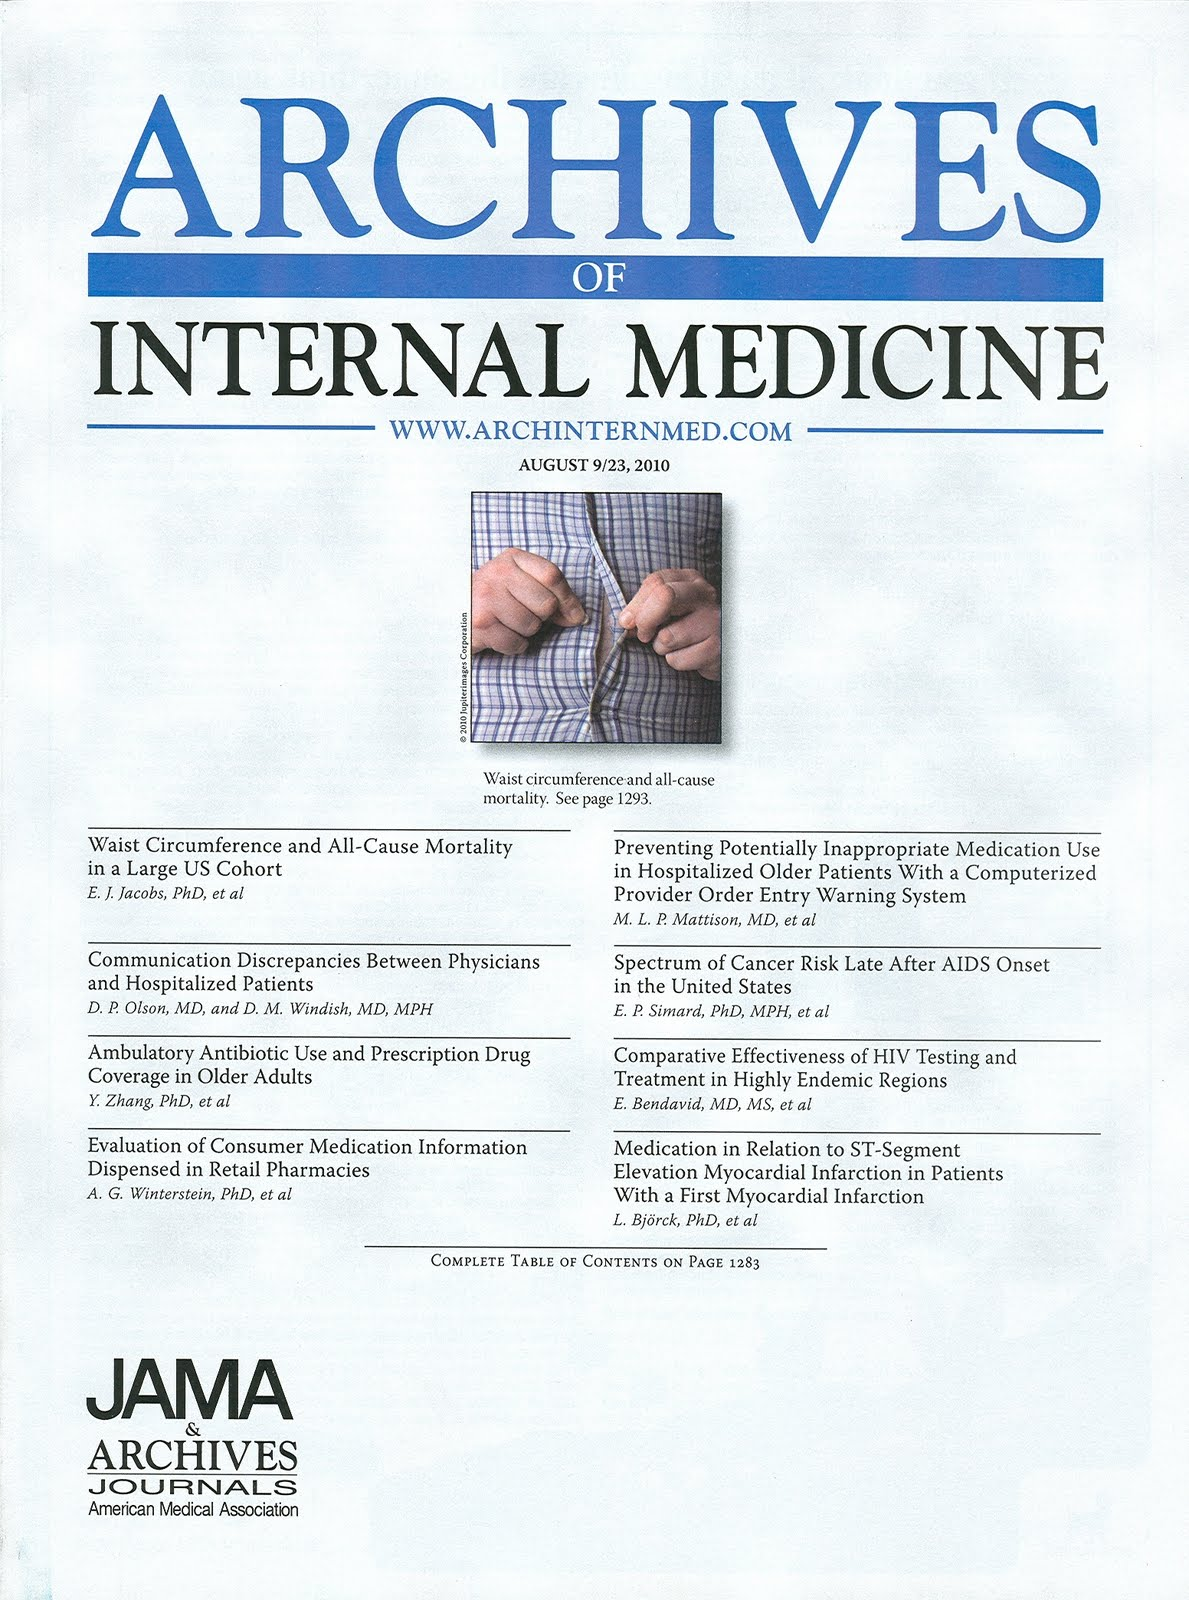 Archieves of Internal Medicine Cover